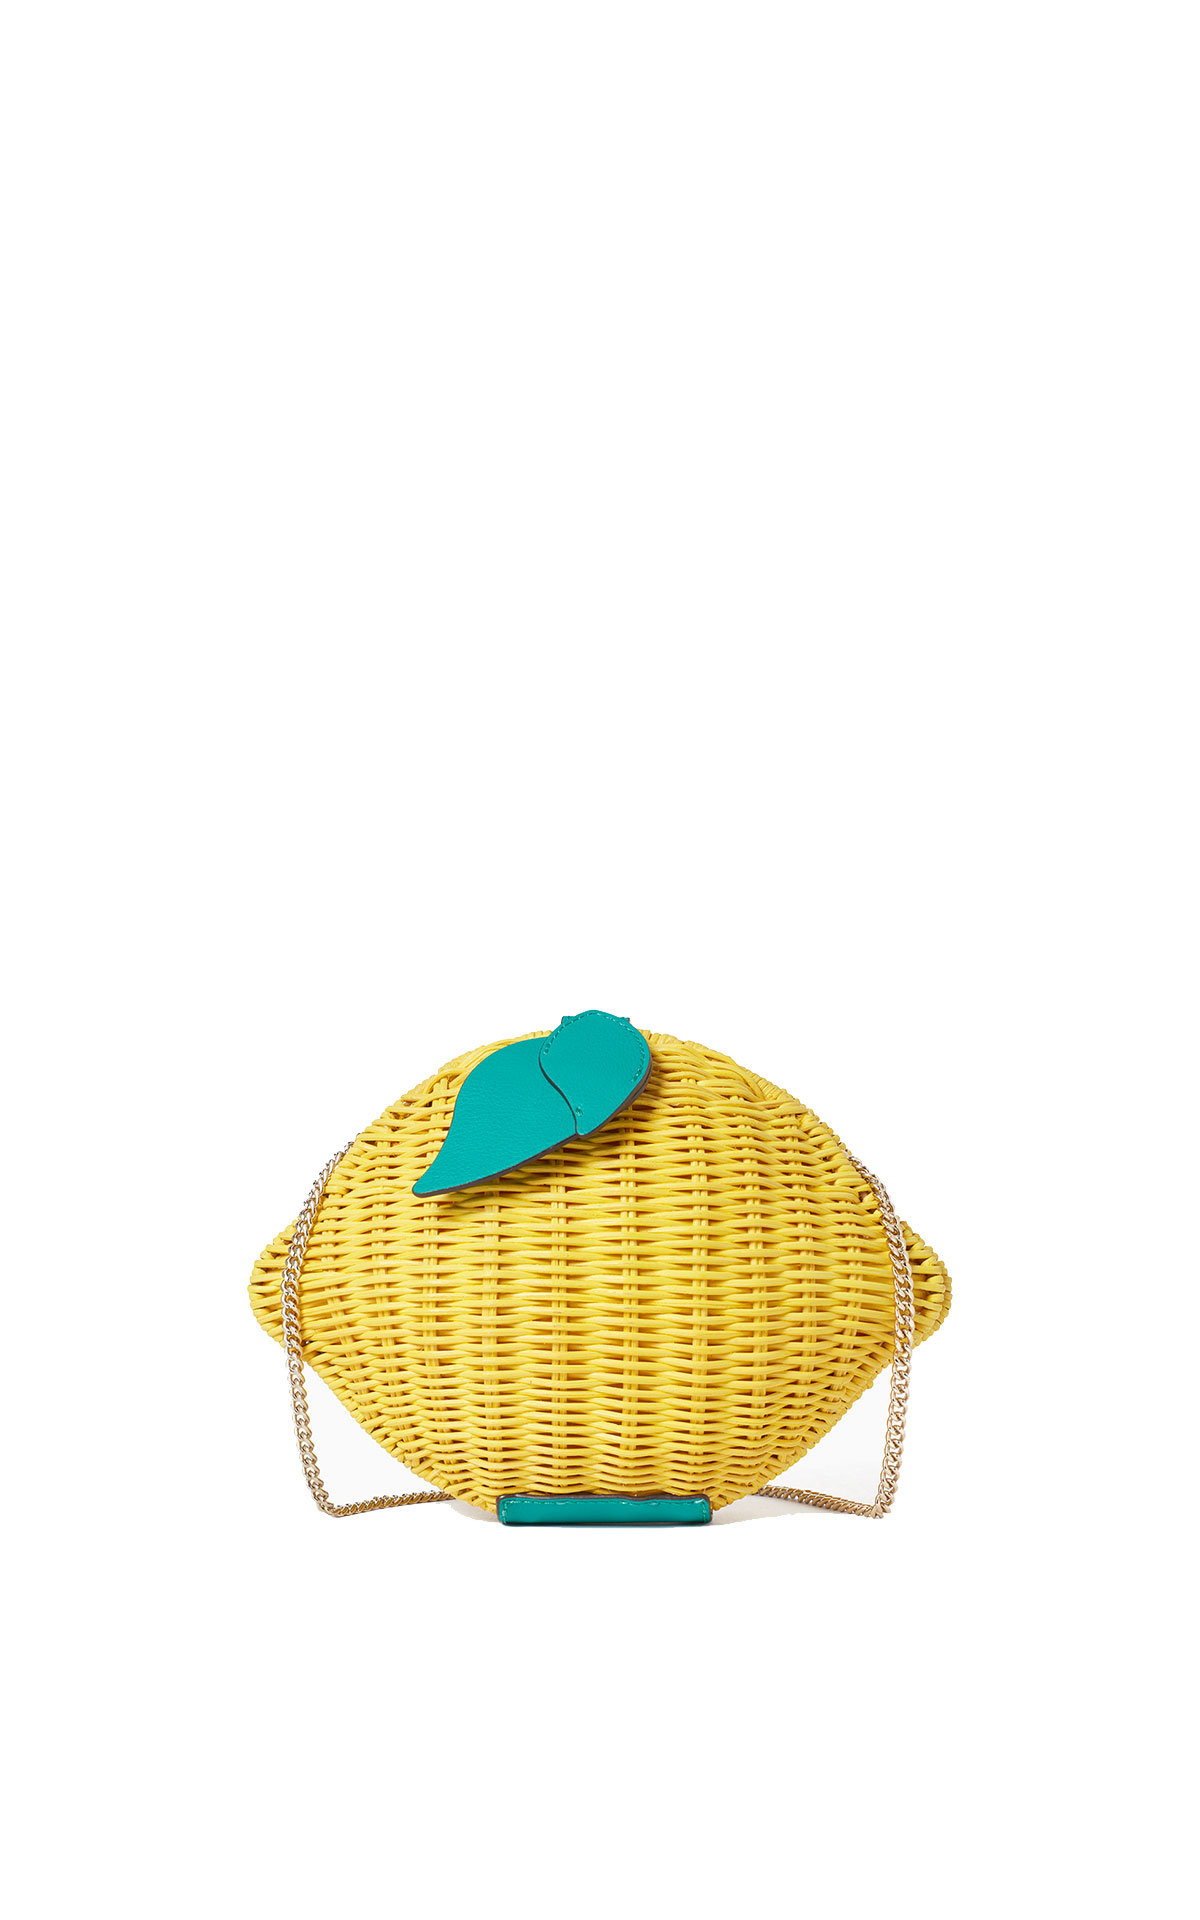 kate spade new york Picnic perfect lemon crossbody from Bicester Village